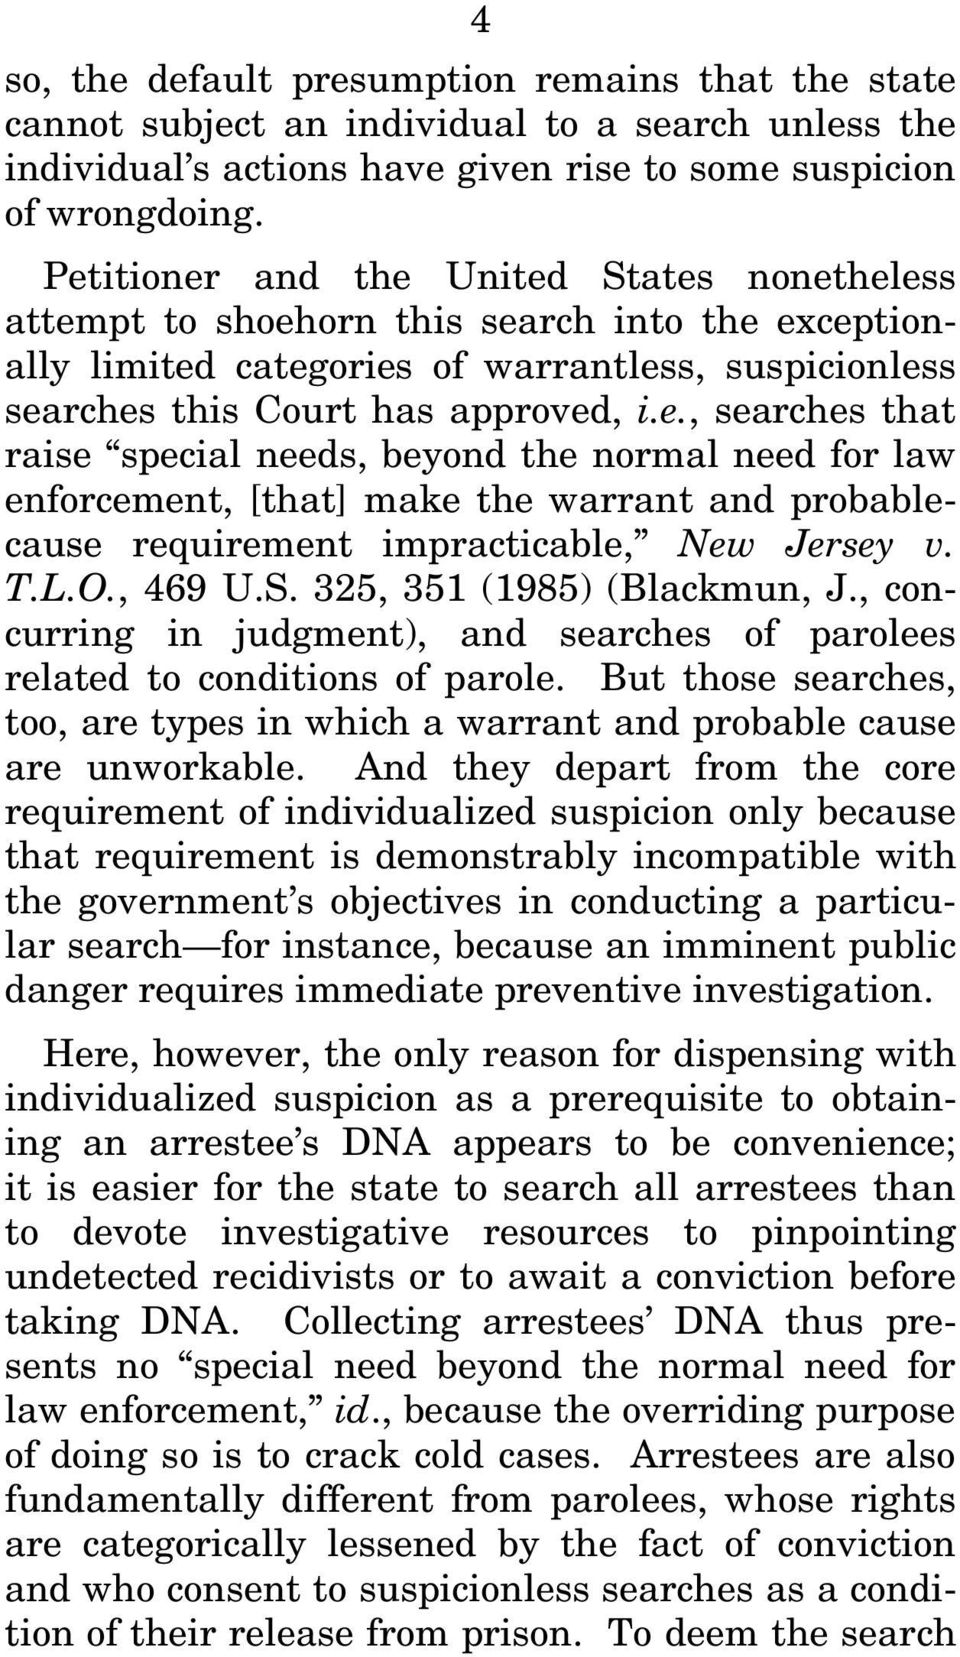 T.L.O., 469 U.S. 325, 351 (1985) (Blackmun, J., concurring in judgment), and searches of parolees related to conditions of parole.